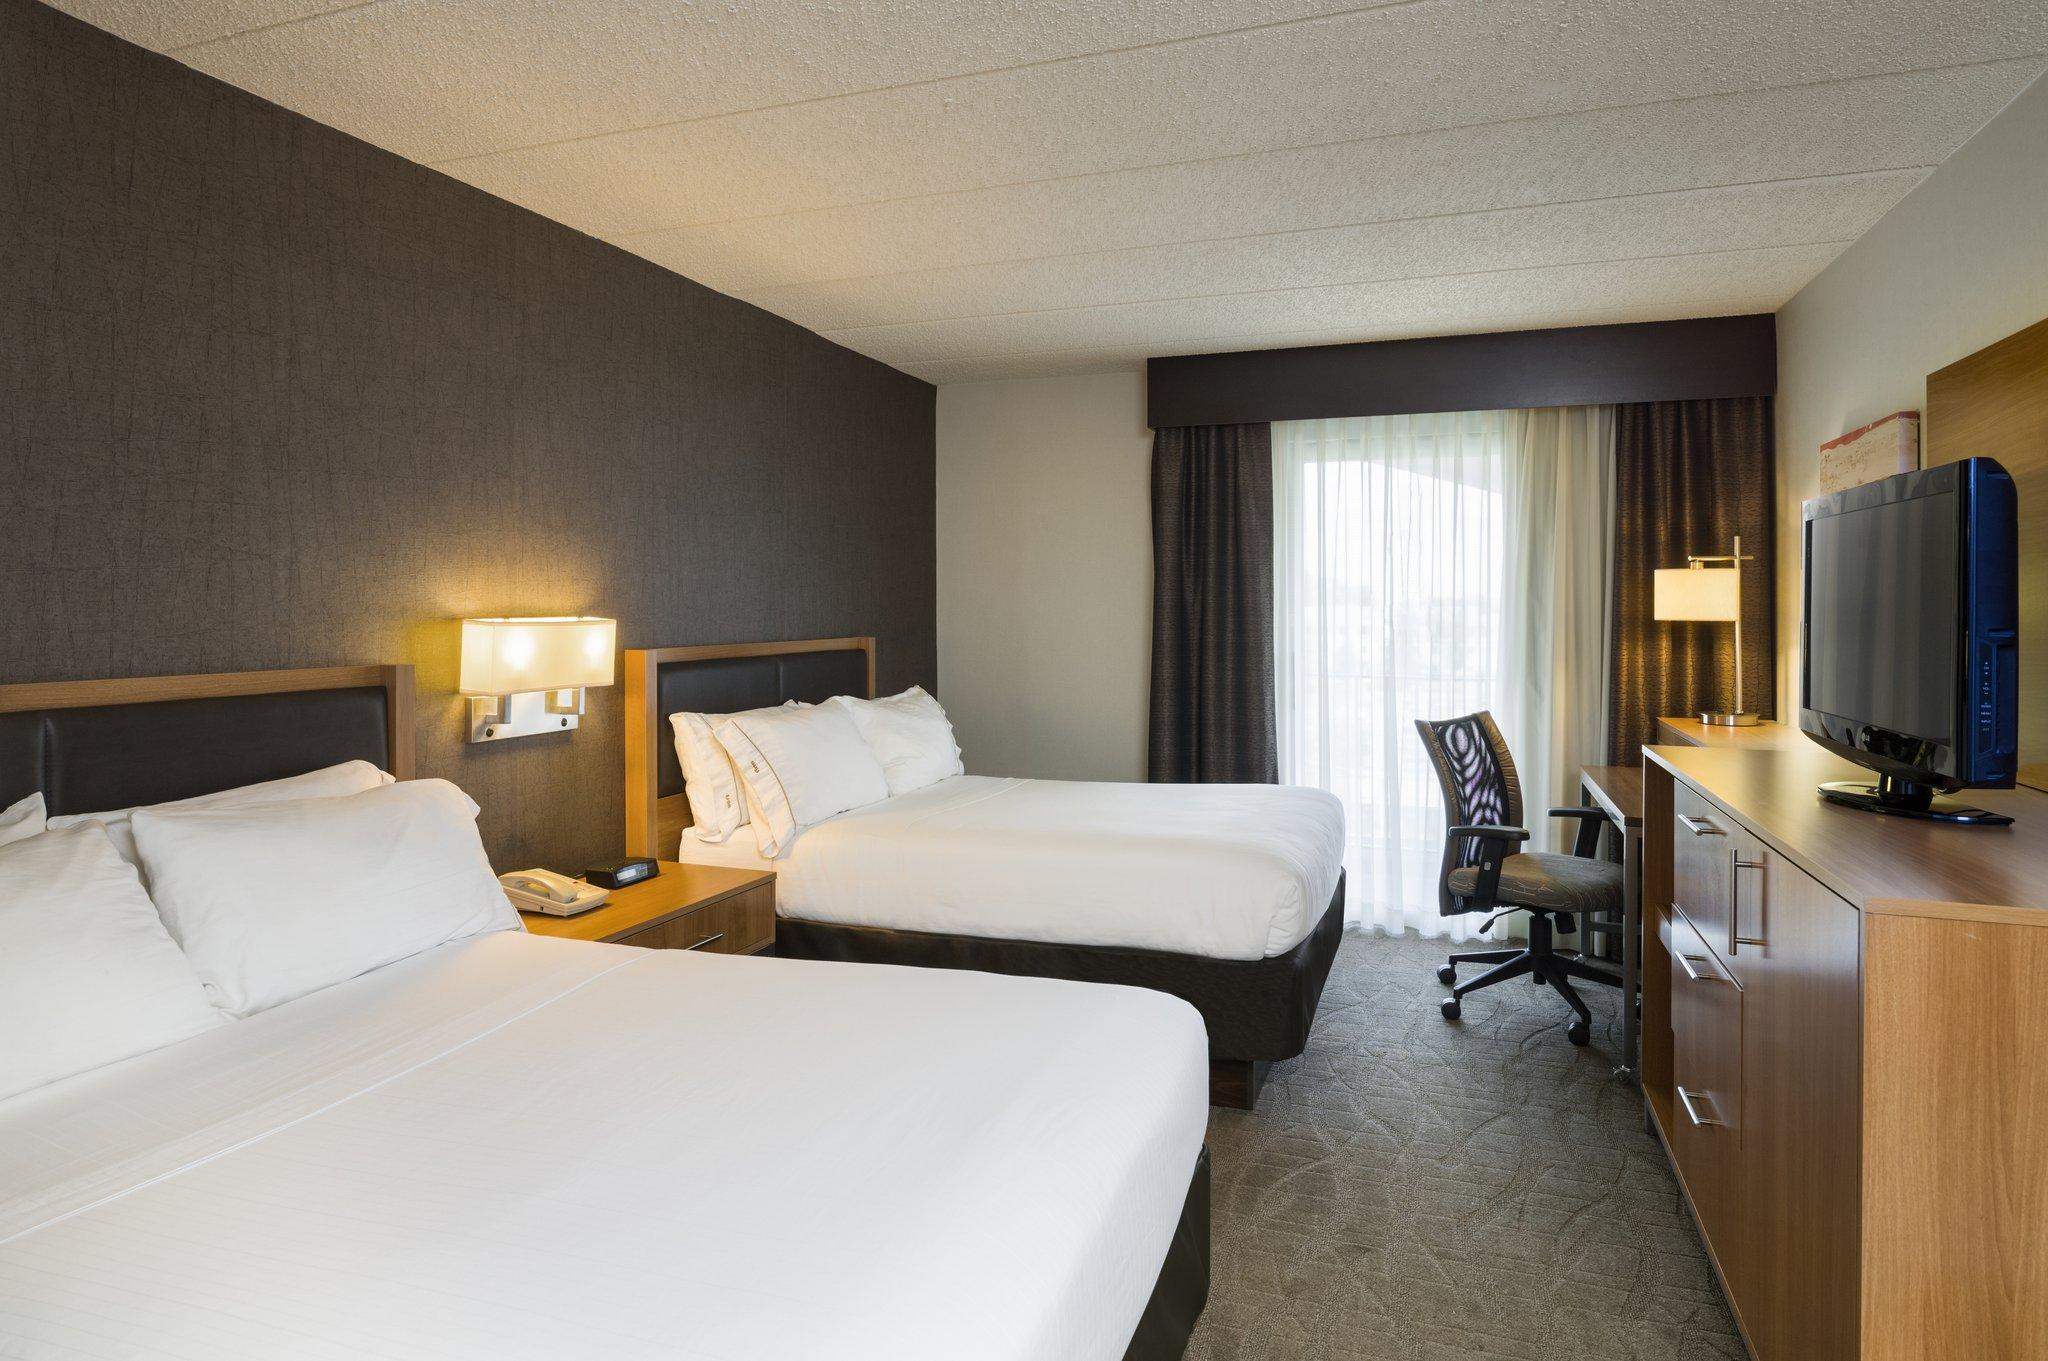 Holiday Inn Express Hotel & Suites King of Prussia, Montgomery